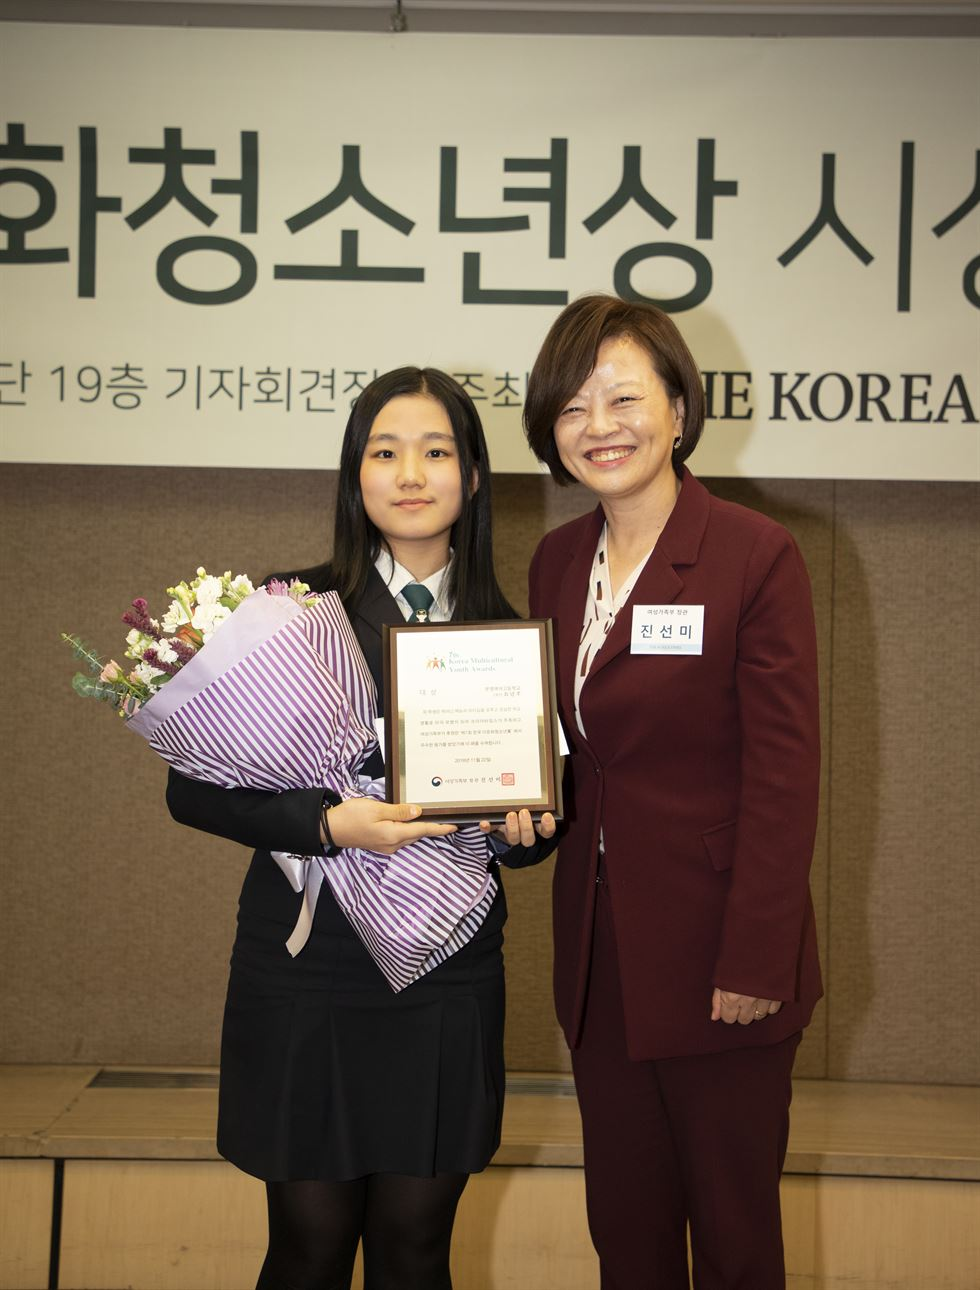 Winners of the 7th Korea Multicultural Youth Awards, hosted by The Korea Times, and honored guests pose after the award ceremony at the Korea Press Center in Seoul, Thursday. Ten students and two volunteer groups received the awards. Korea Times photo by Choi Won-suk